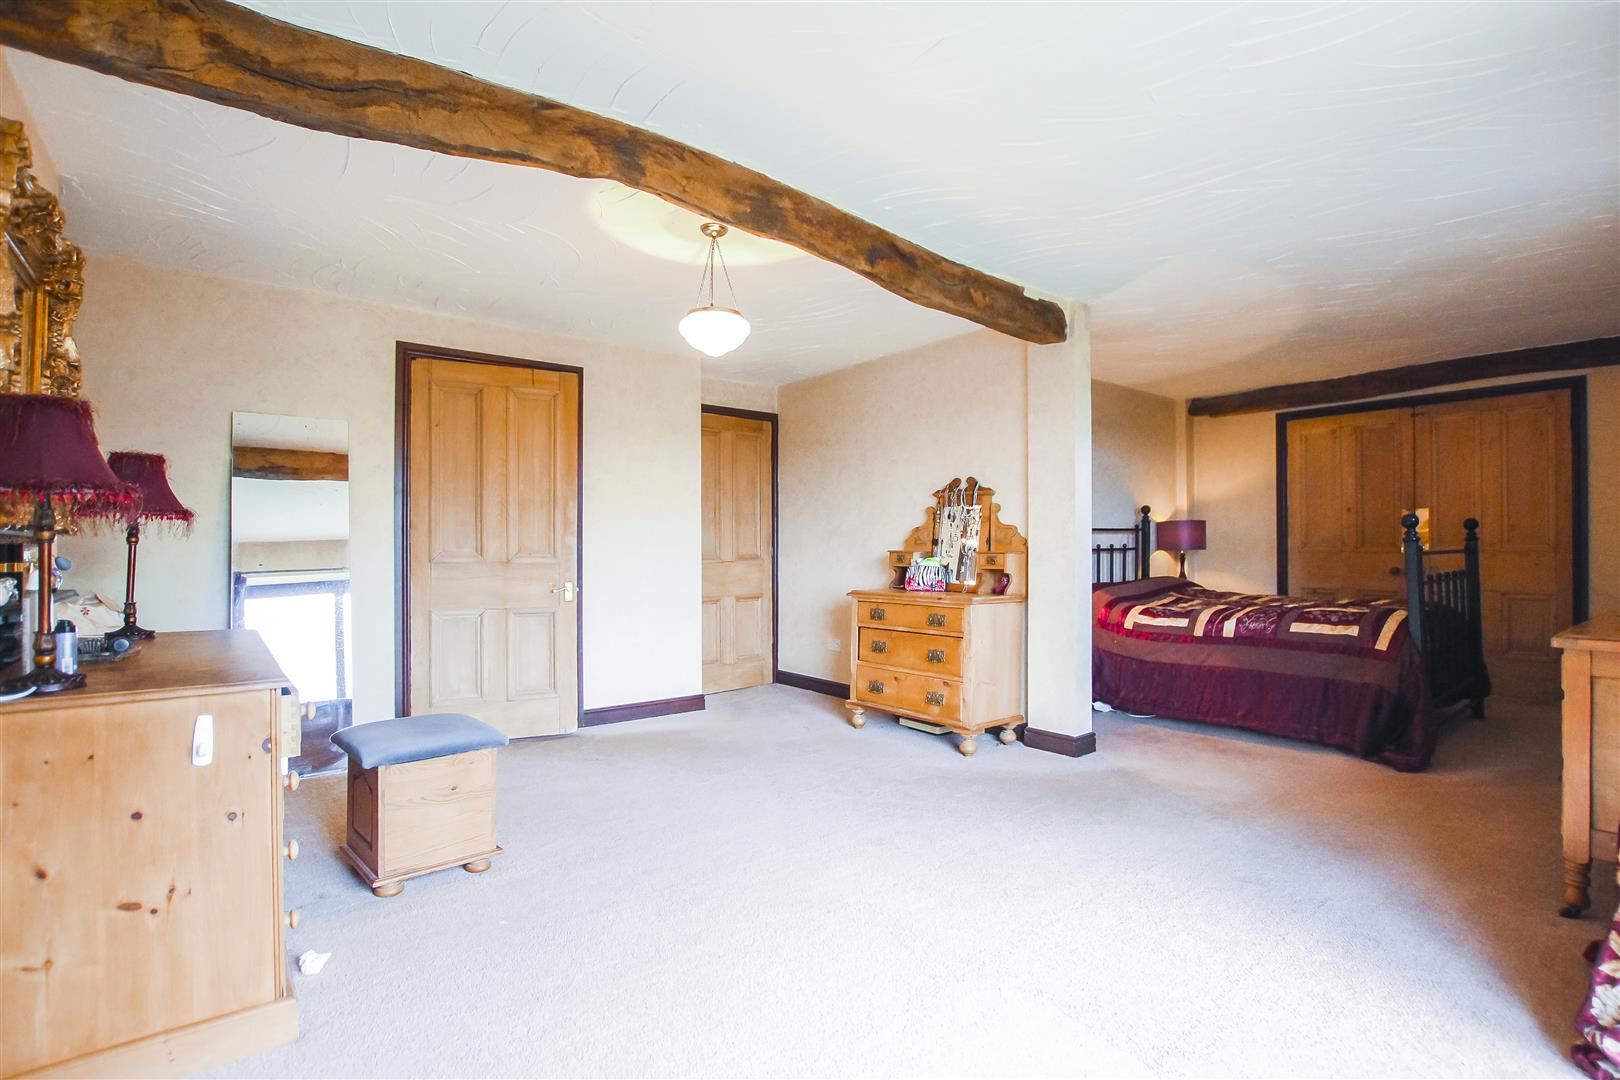 5 Bedroom Barn Conversion For Sale - Image 10